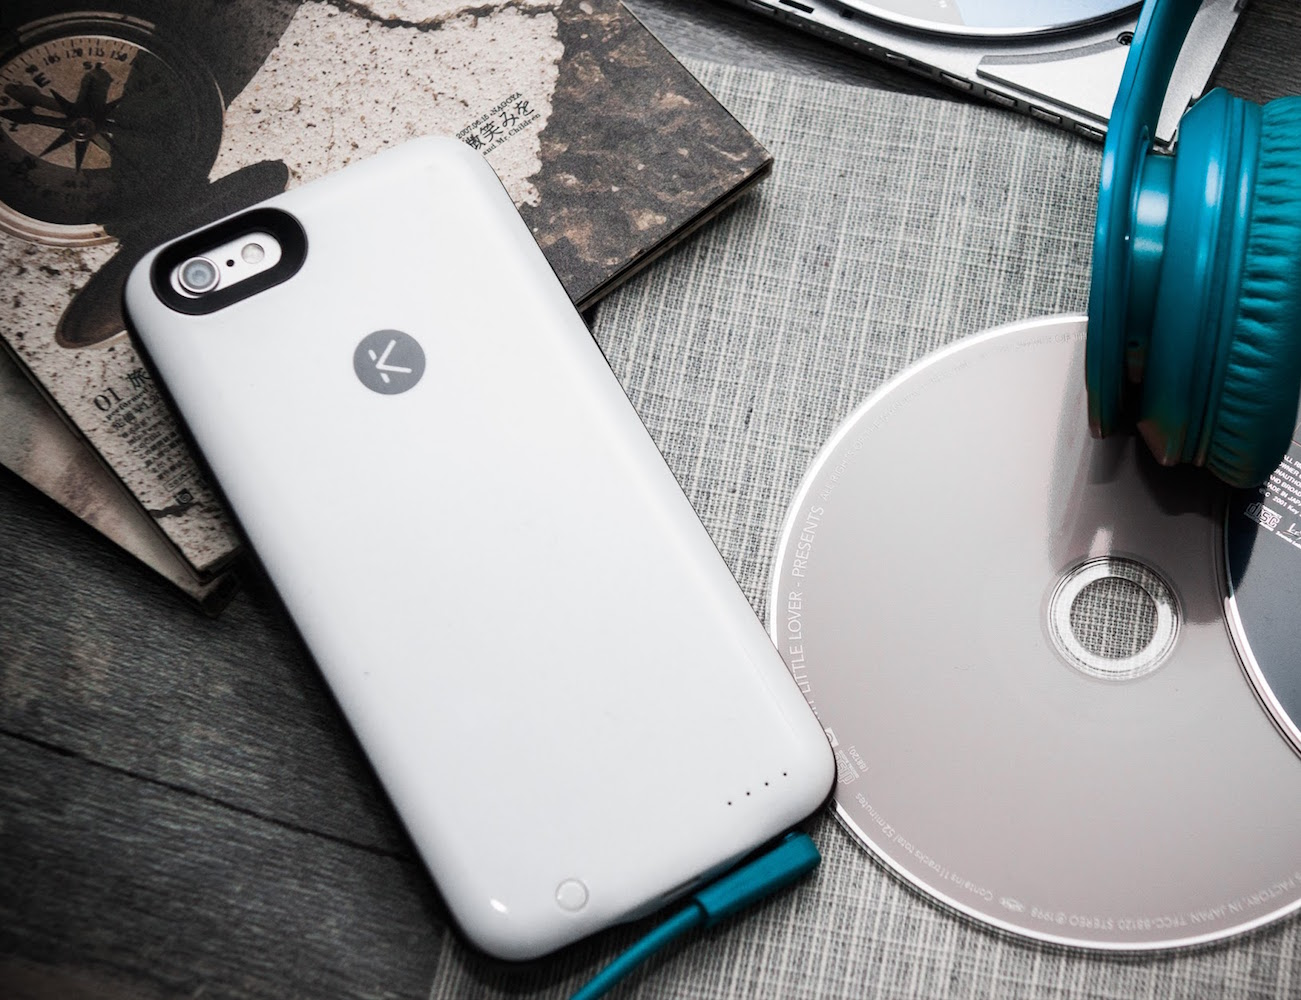 KUKE – Empower your iPhone Beyond the Limits